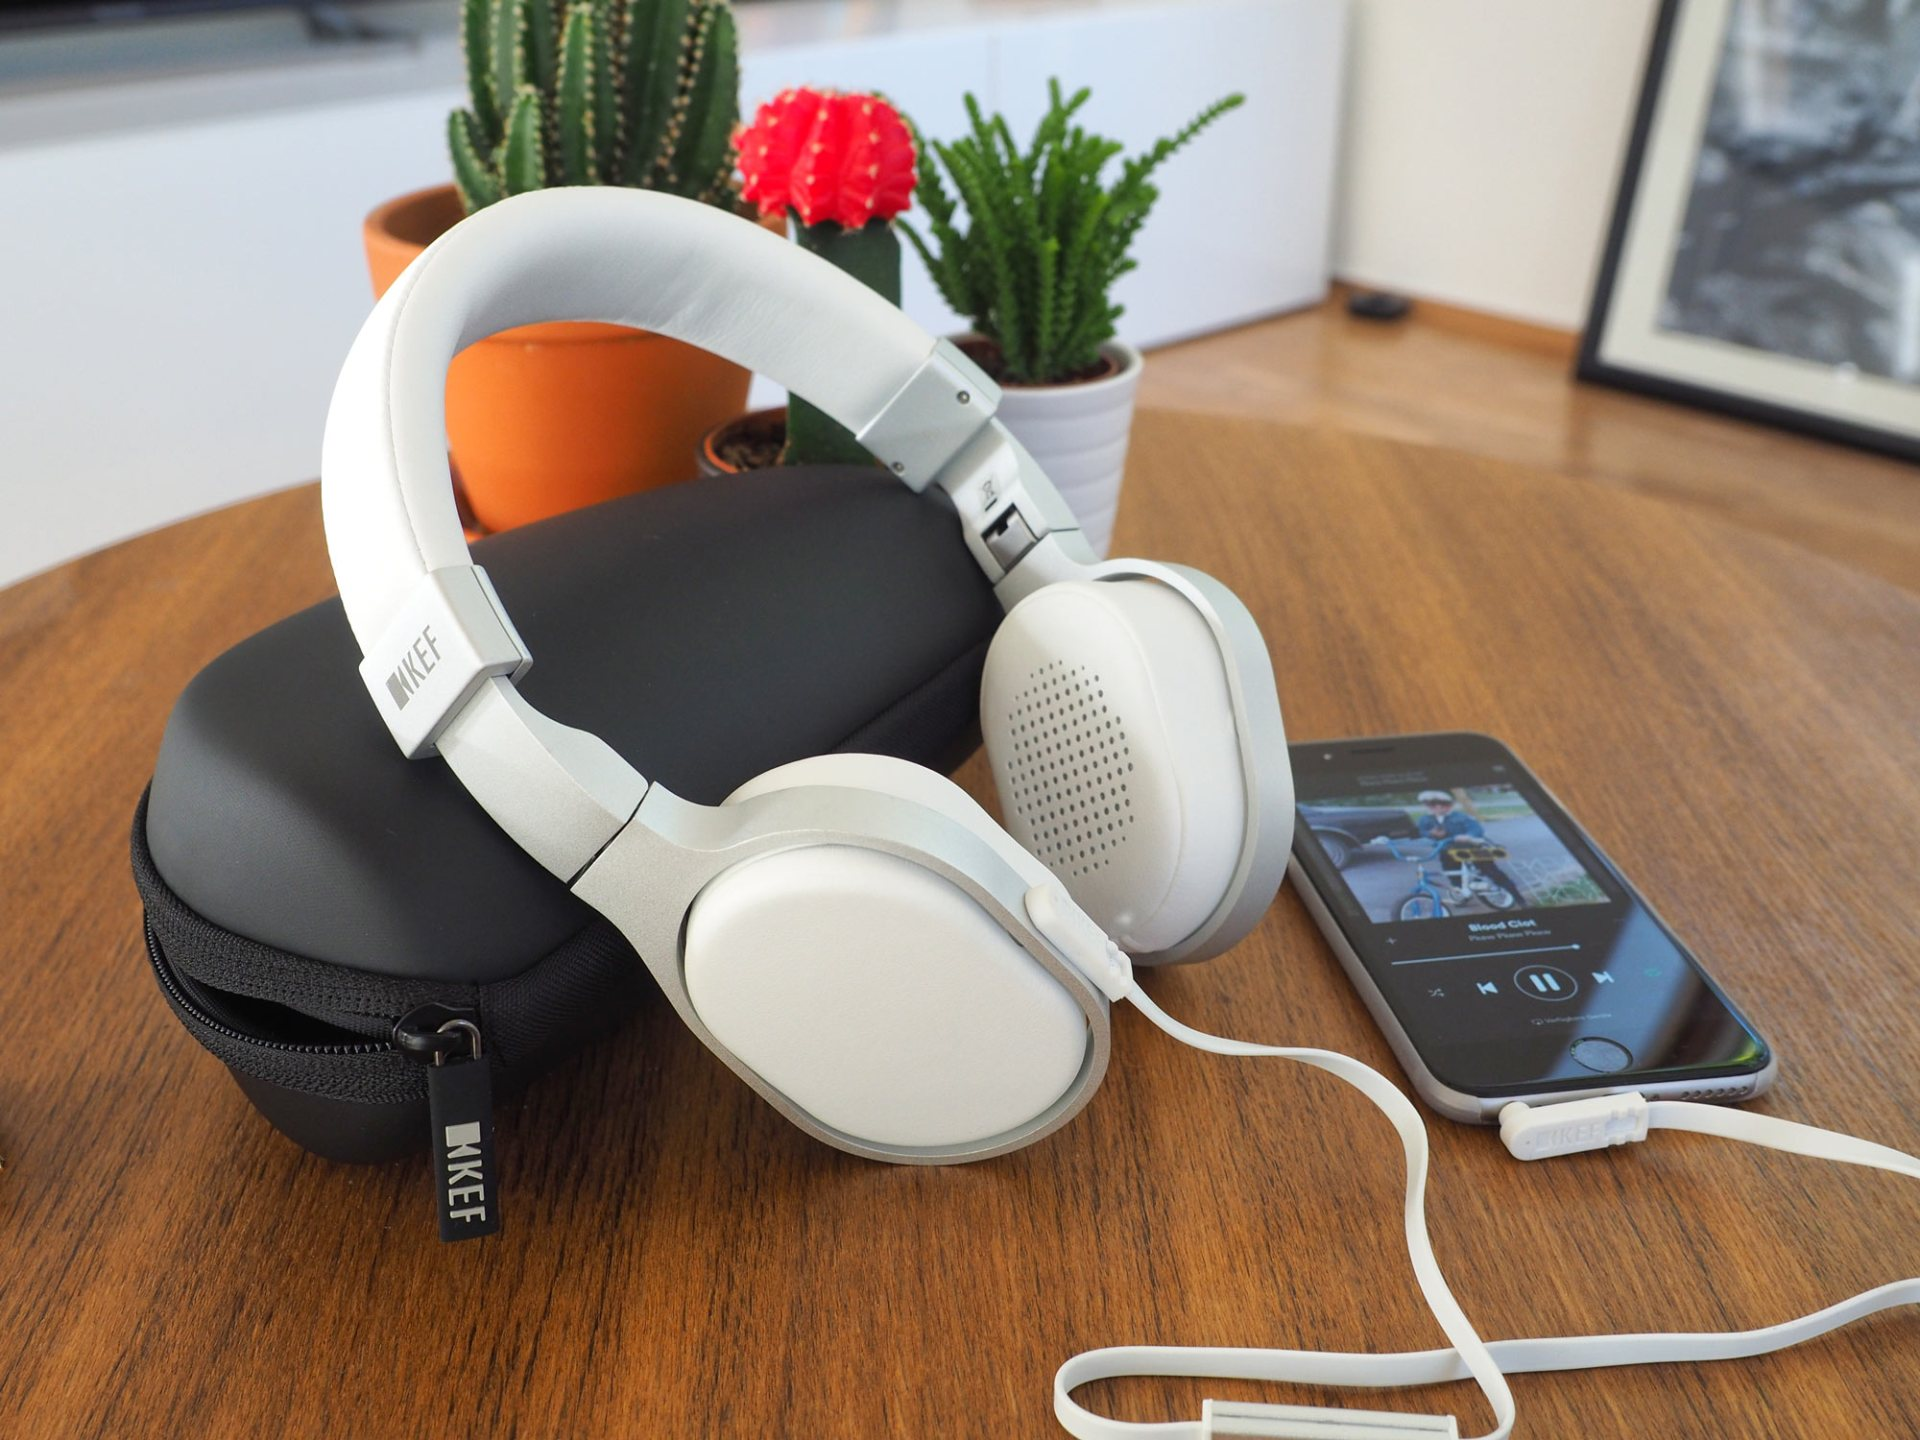 KEF M500 OnEar